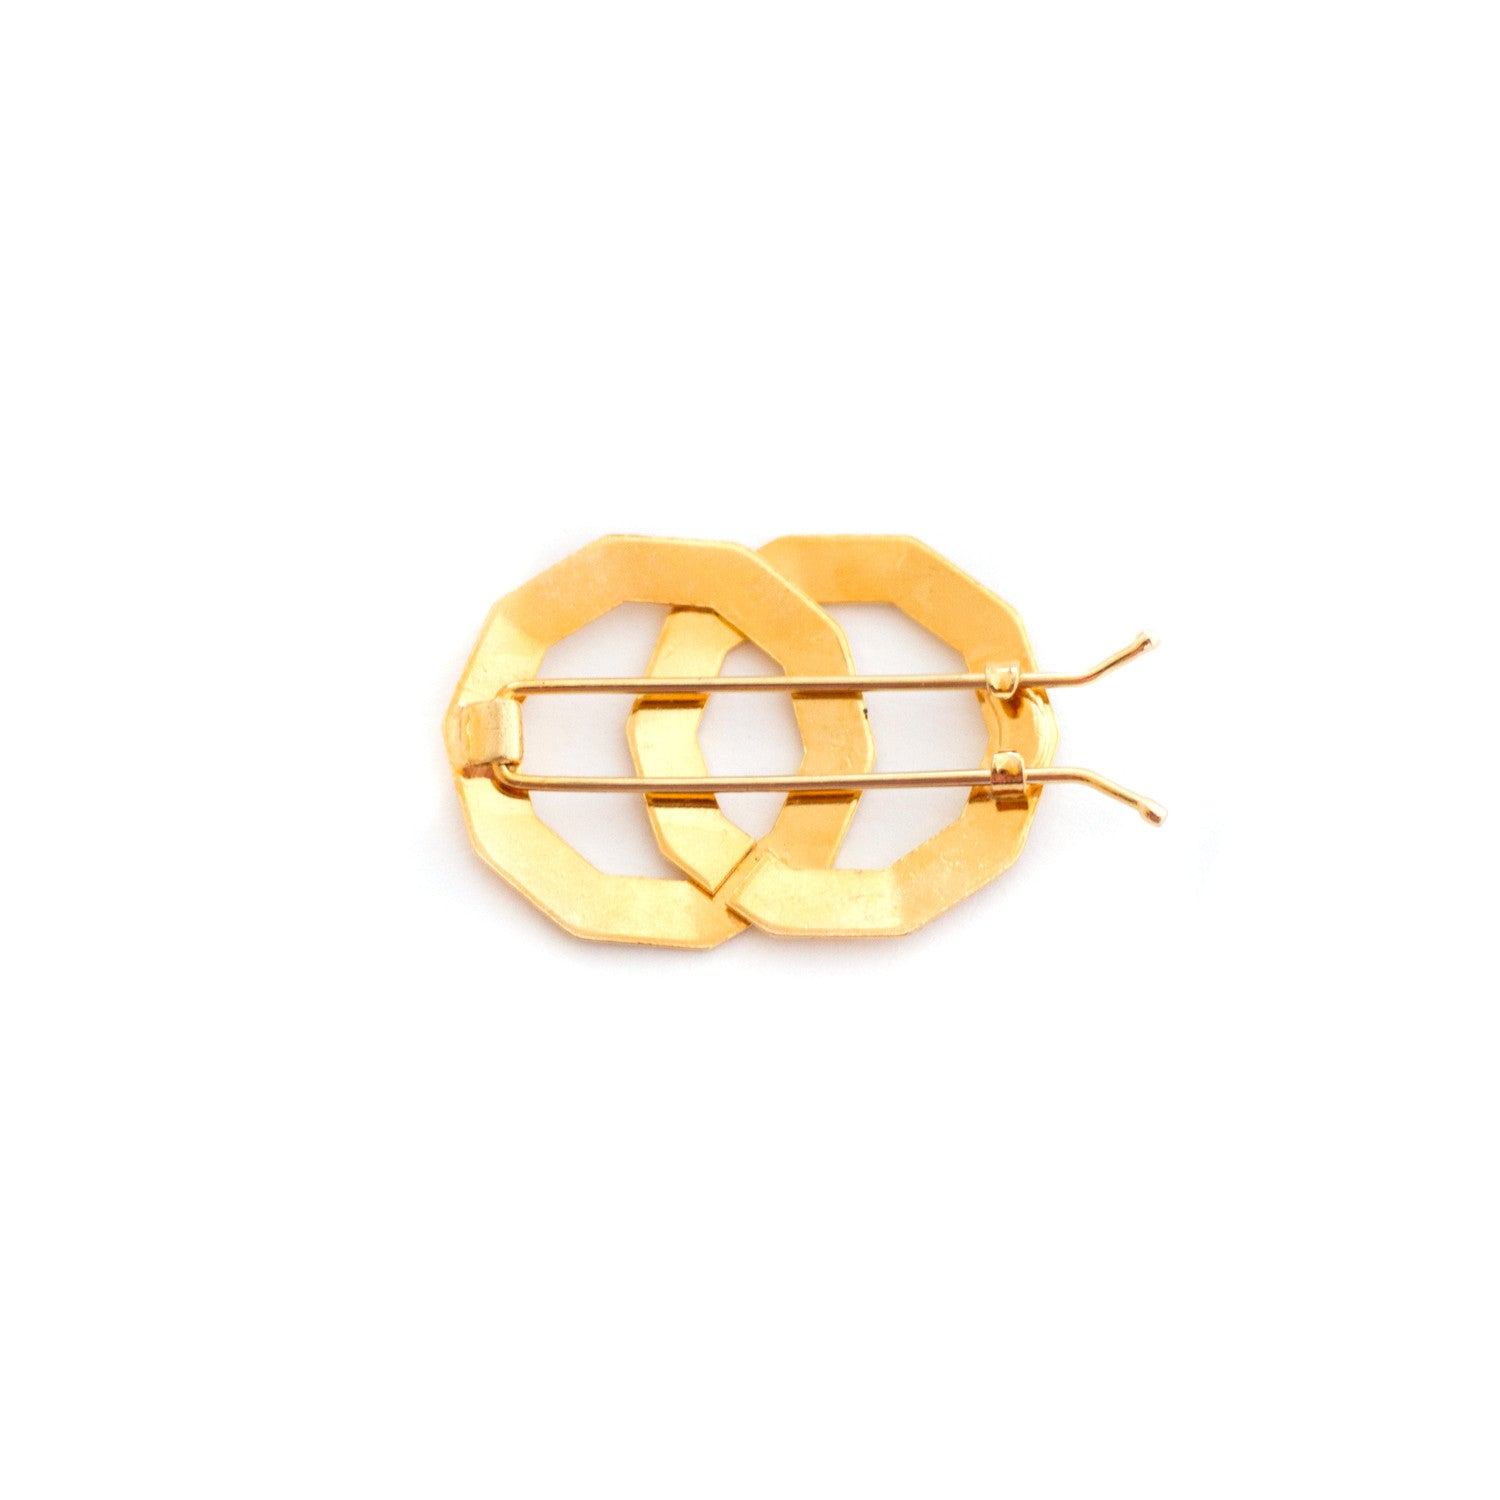 Vintage Gold Polygon Barrette